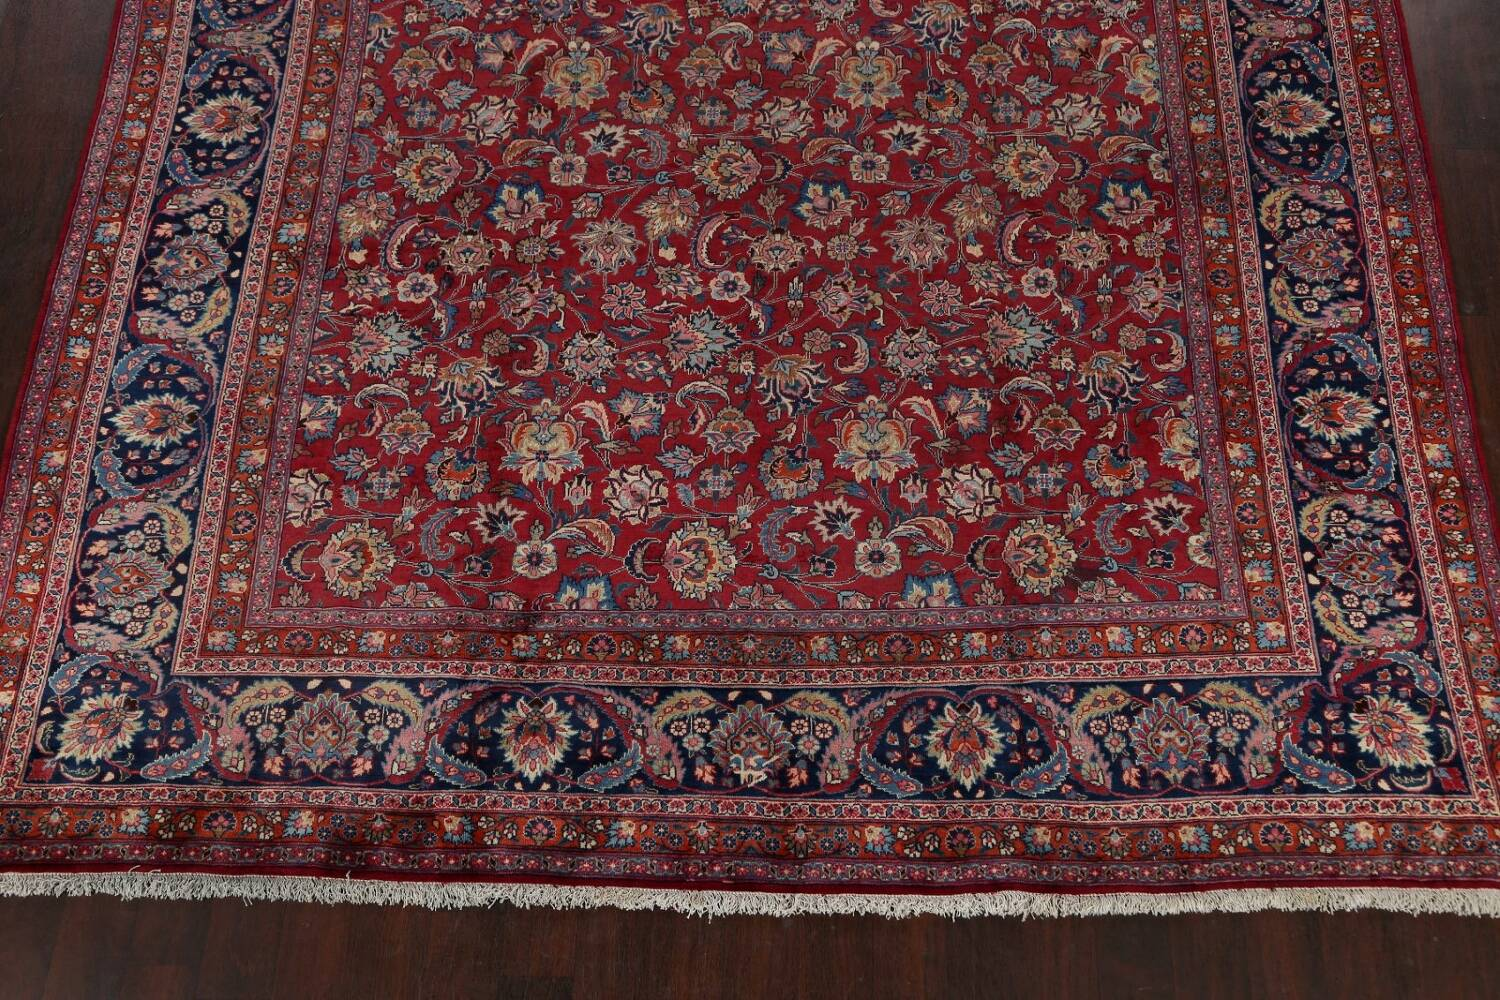 Antique Floral Vegetable Dye Mashad Persian Area Rug 10x13 image 8